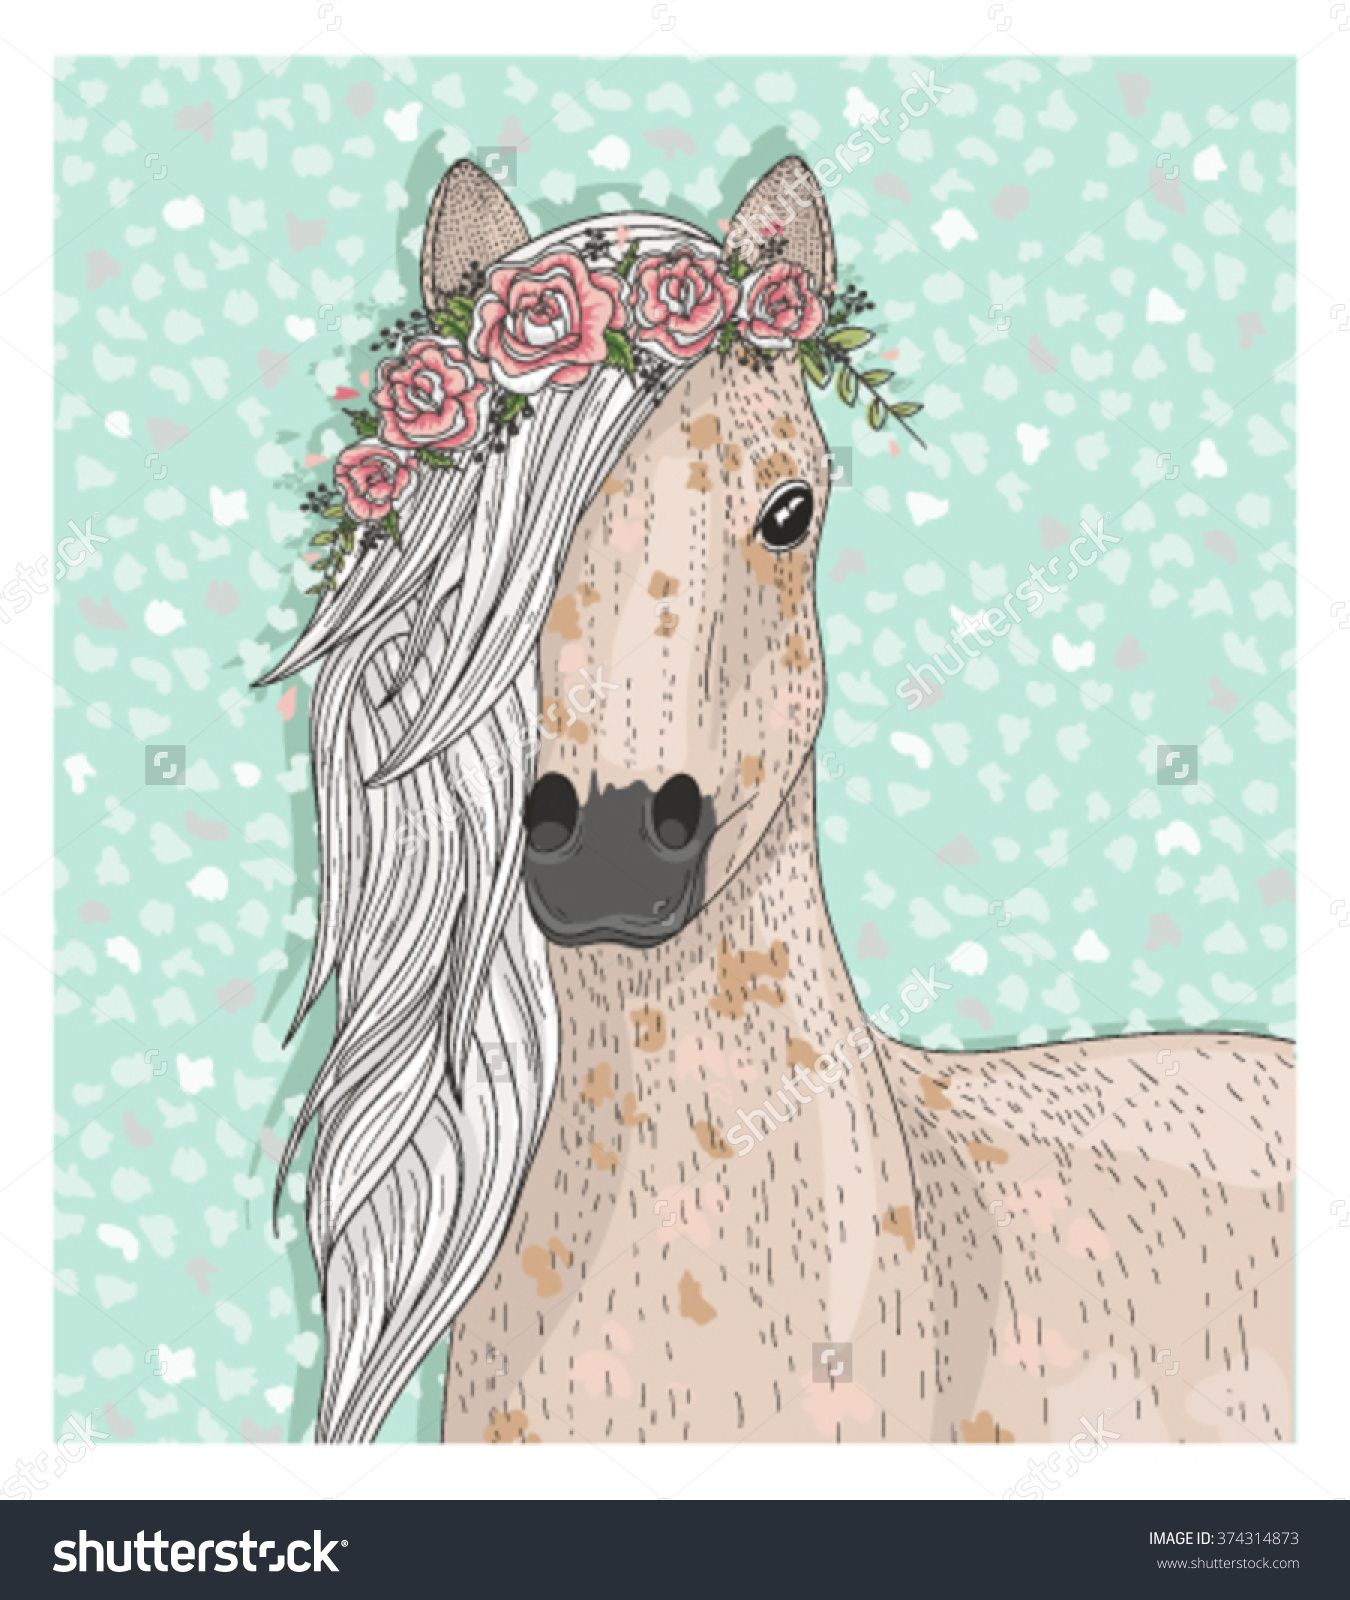 Cute Horse With Flowers Fairytale Background Horse Artwork Horse Illustration Horse Flowers